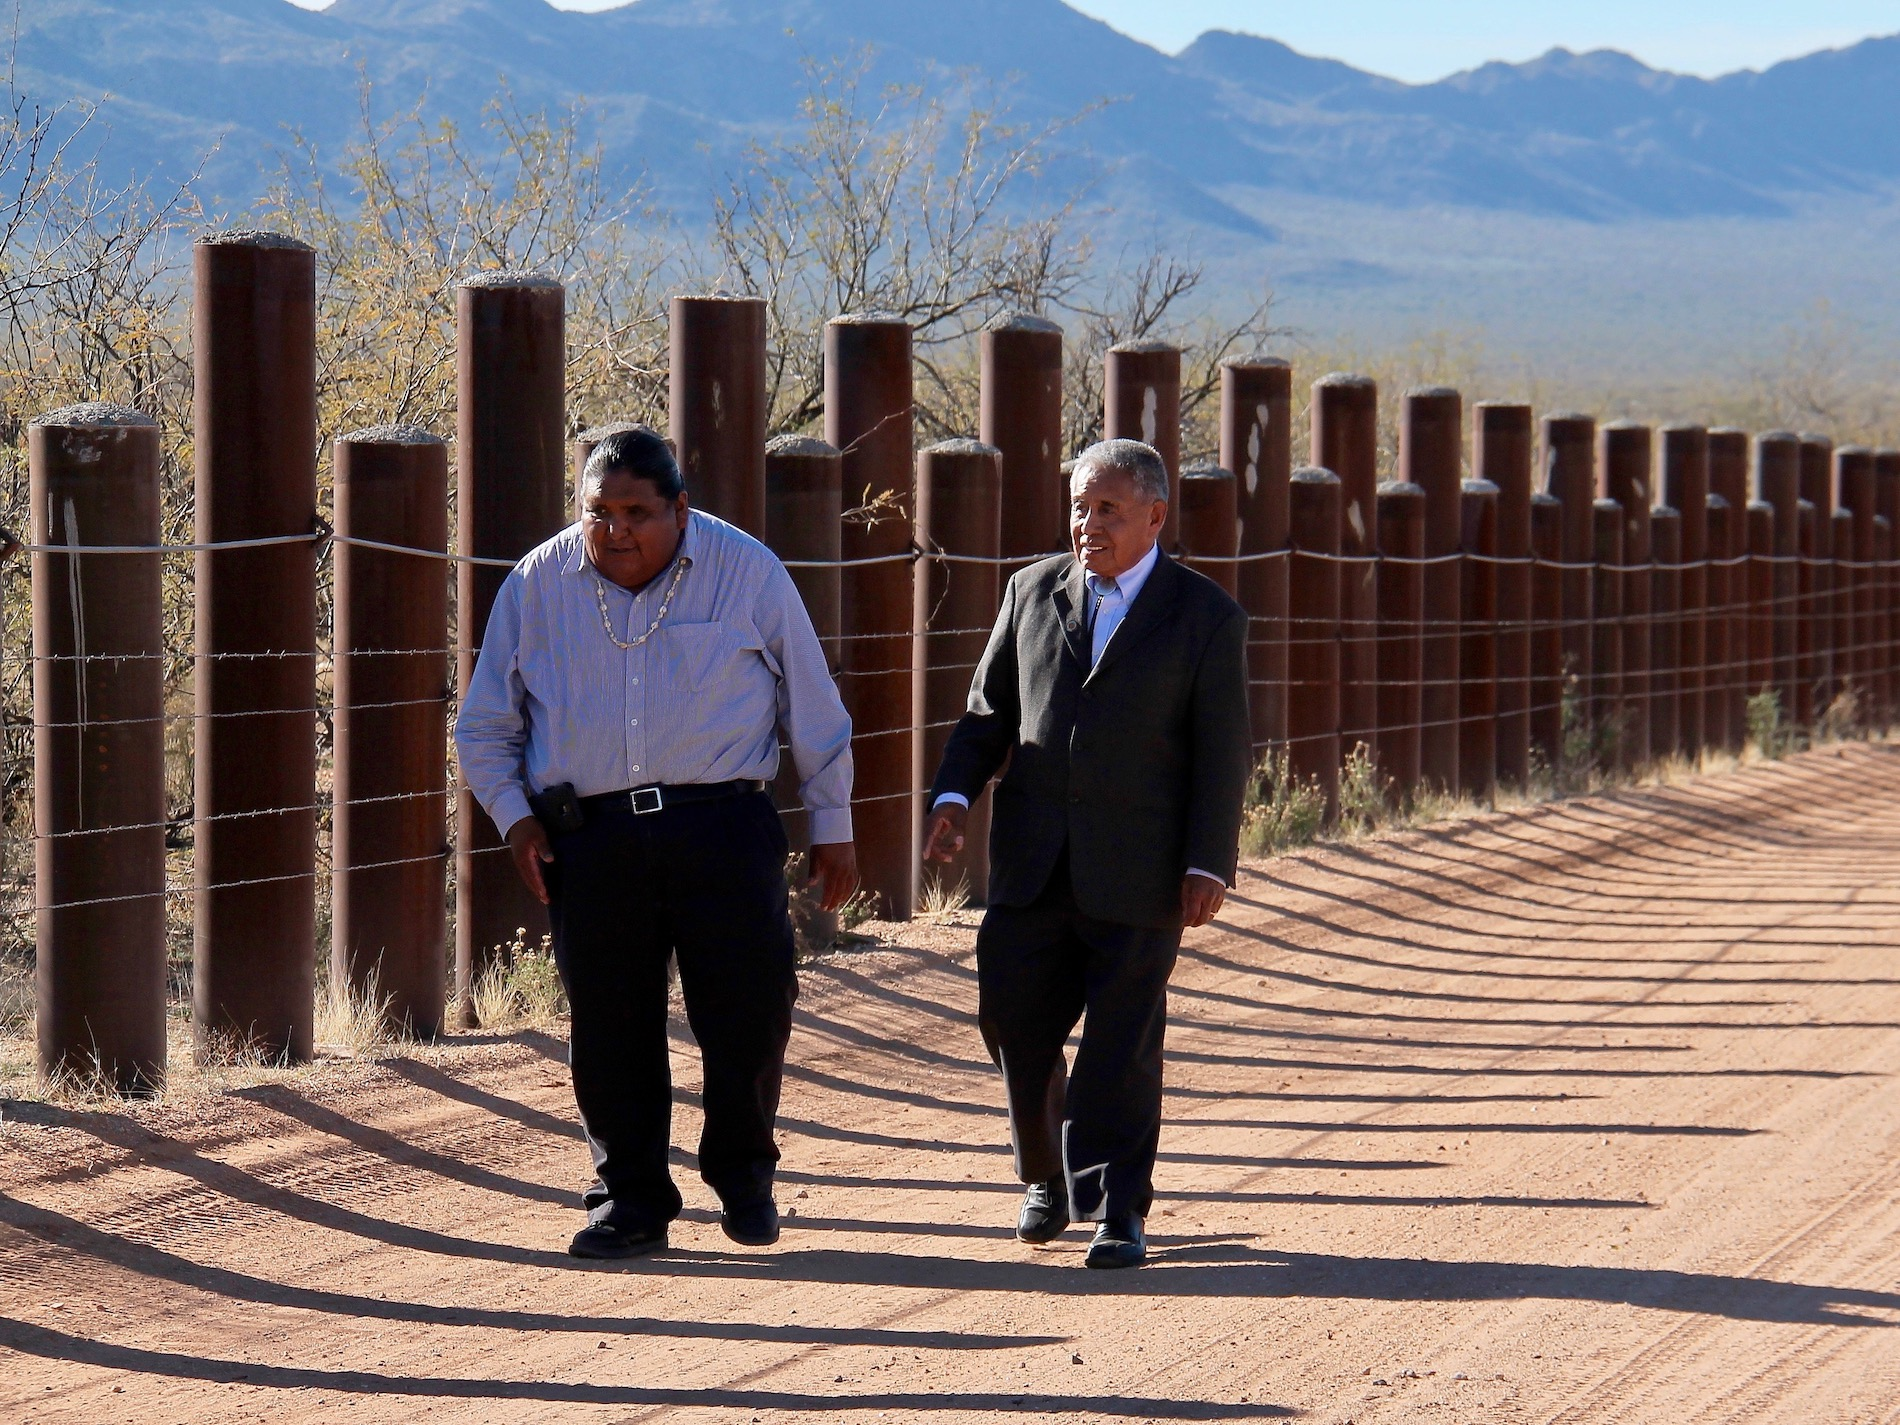 Cronkite News: House passes bill with $1.6 billion to start wall along border